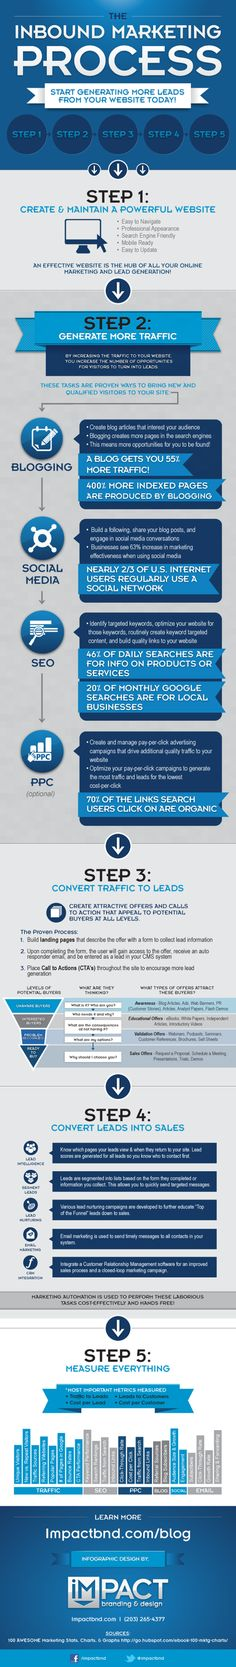 The Inbound Marketing Process - Infographic